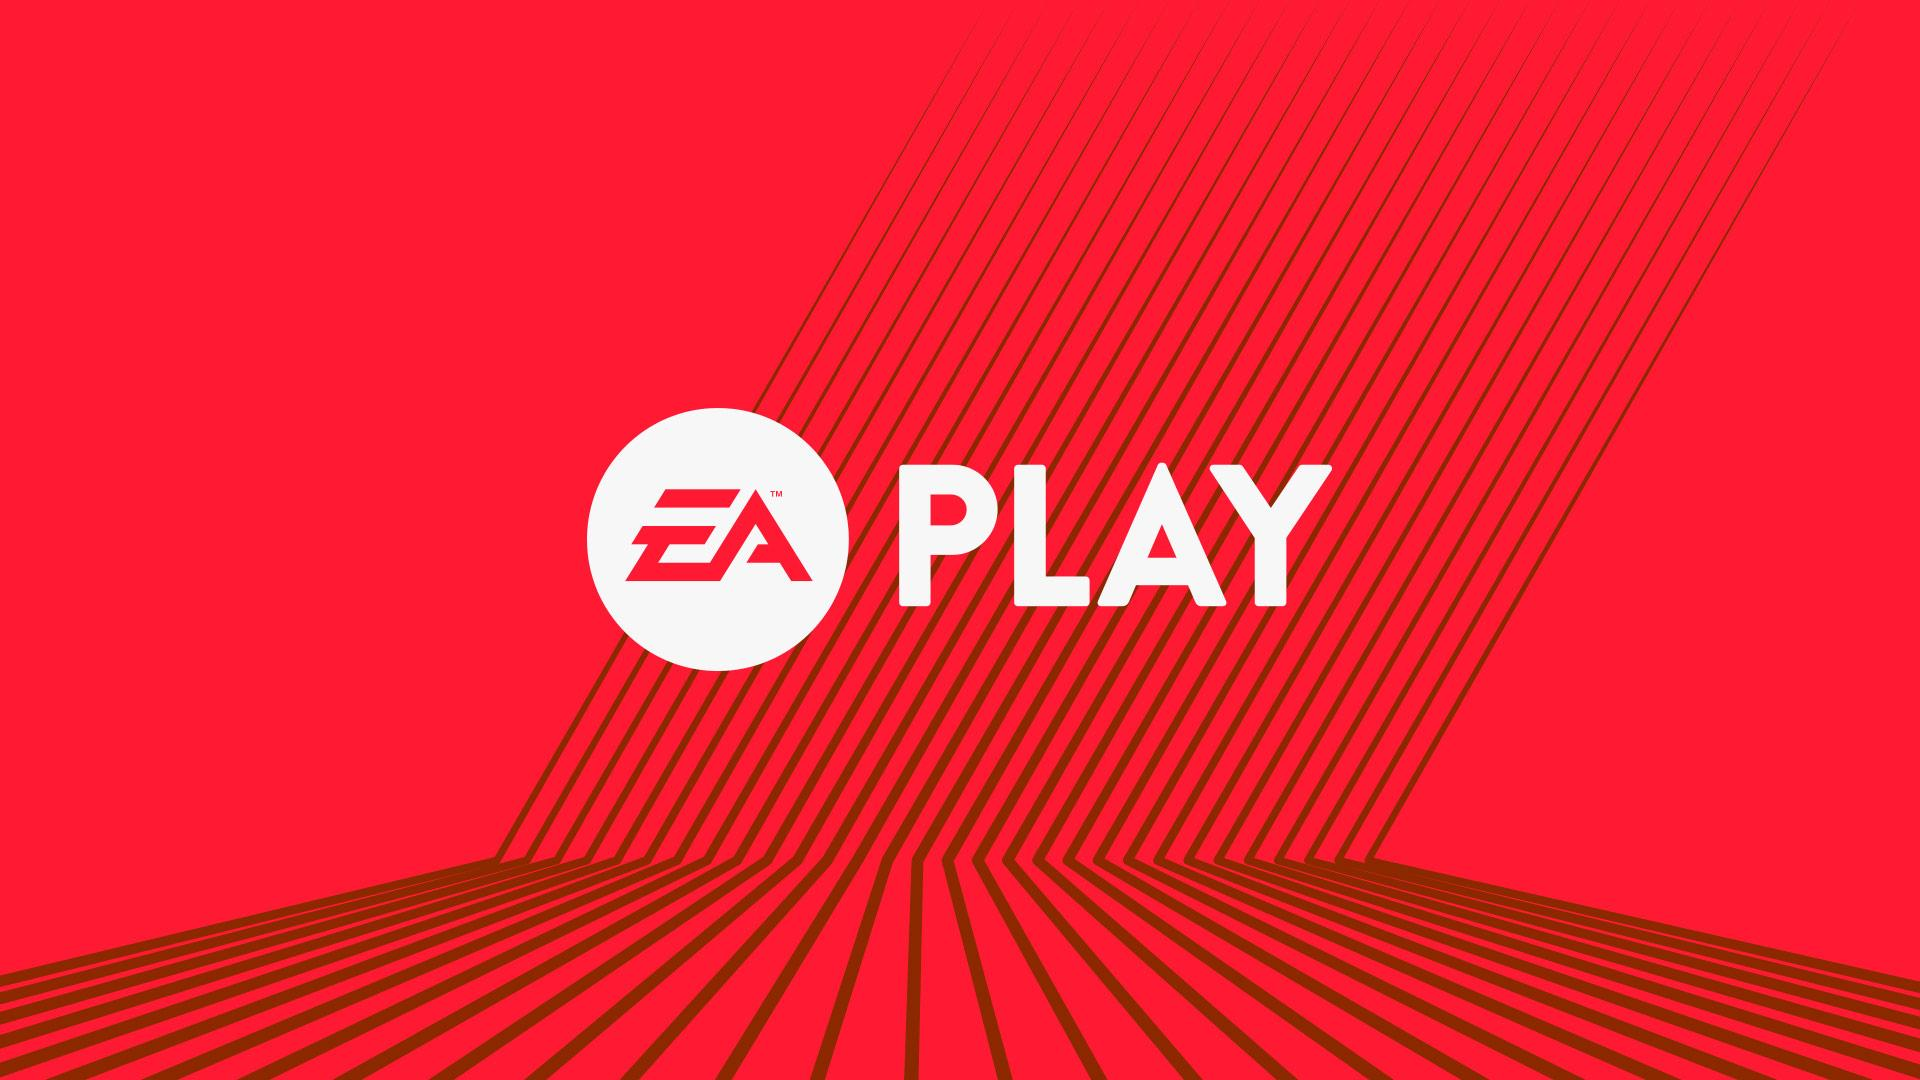 Playable Games Include The Next Star Wars Battlefront & Need for Speed